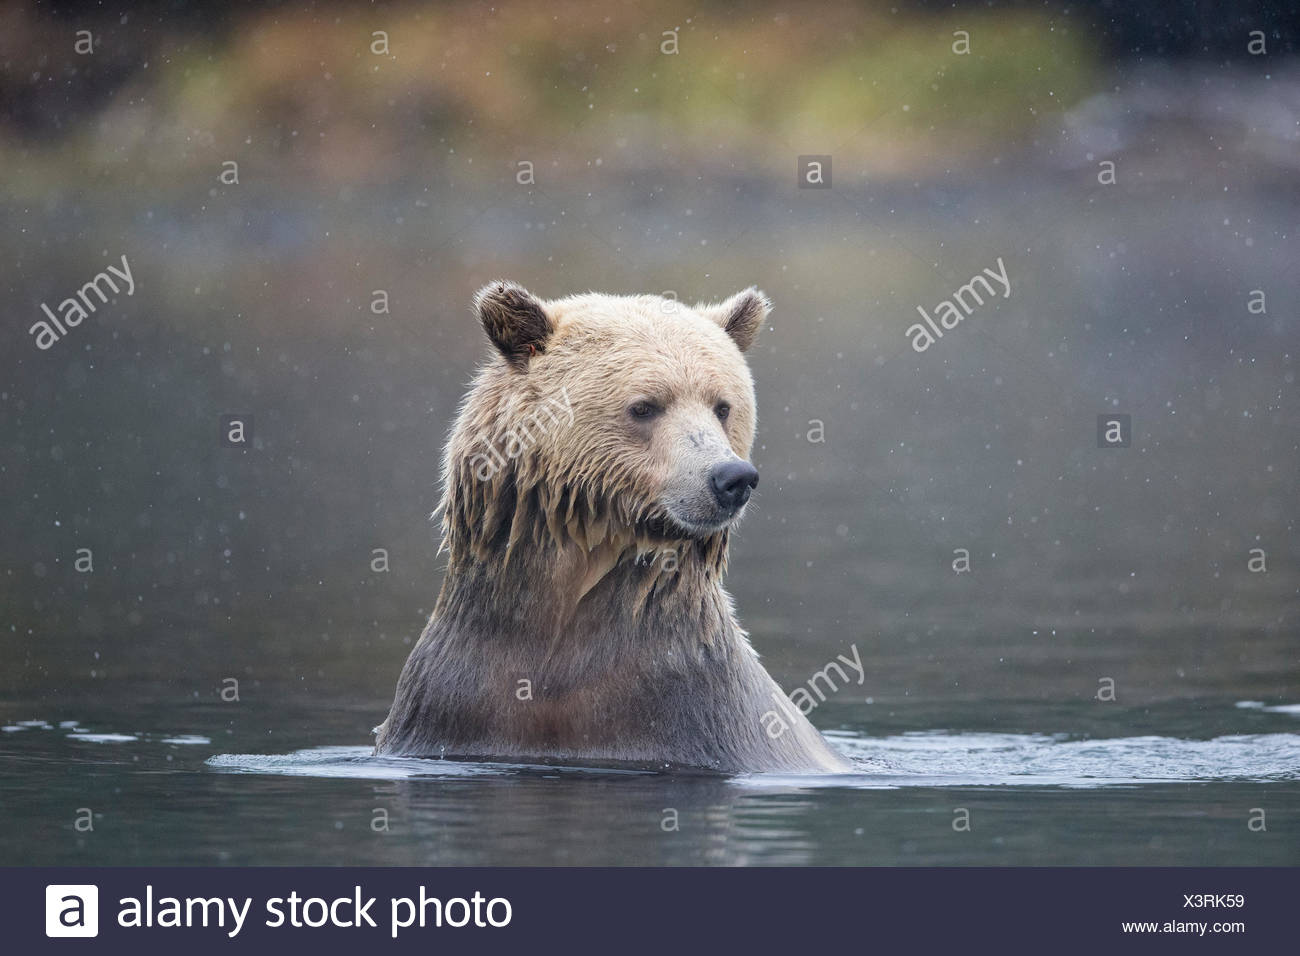 Grizzly bear (Ursus arctos horribilis), female in early snowfall, Chilcotin Region, British Columbia, Canada. - Stock Image